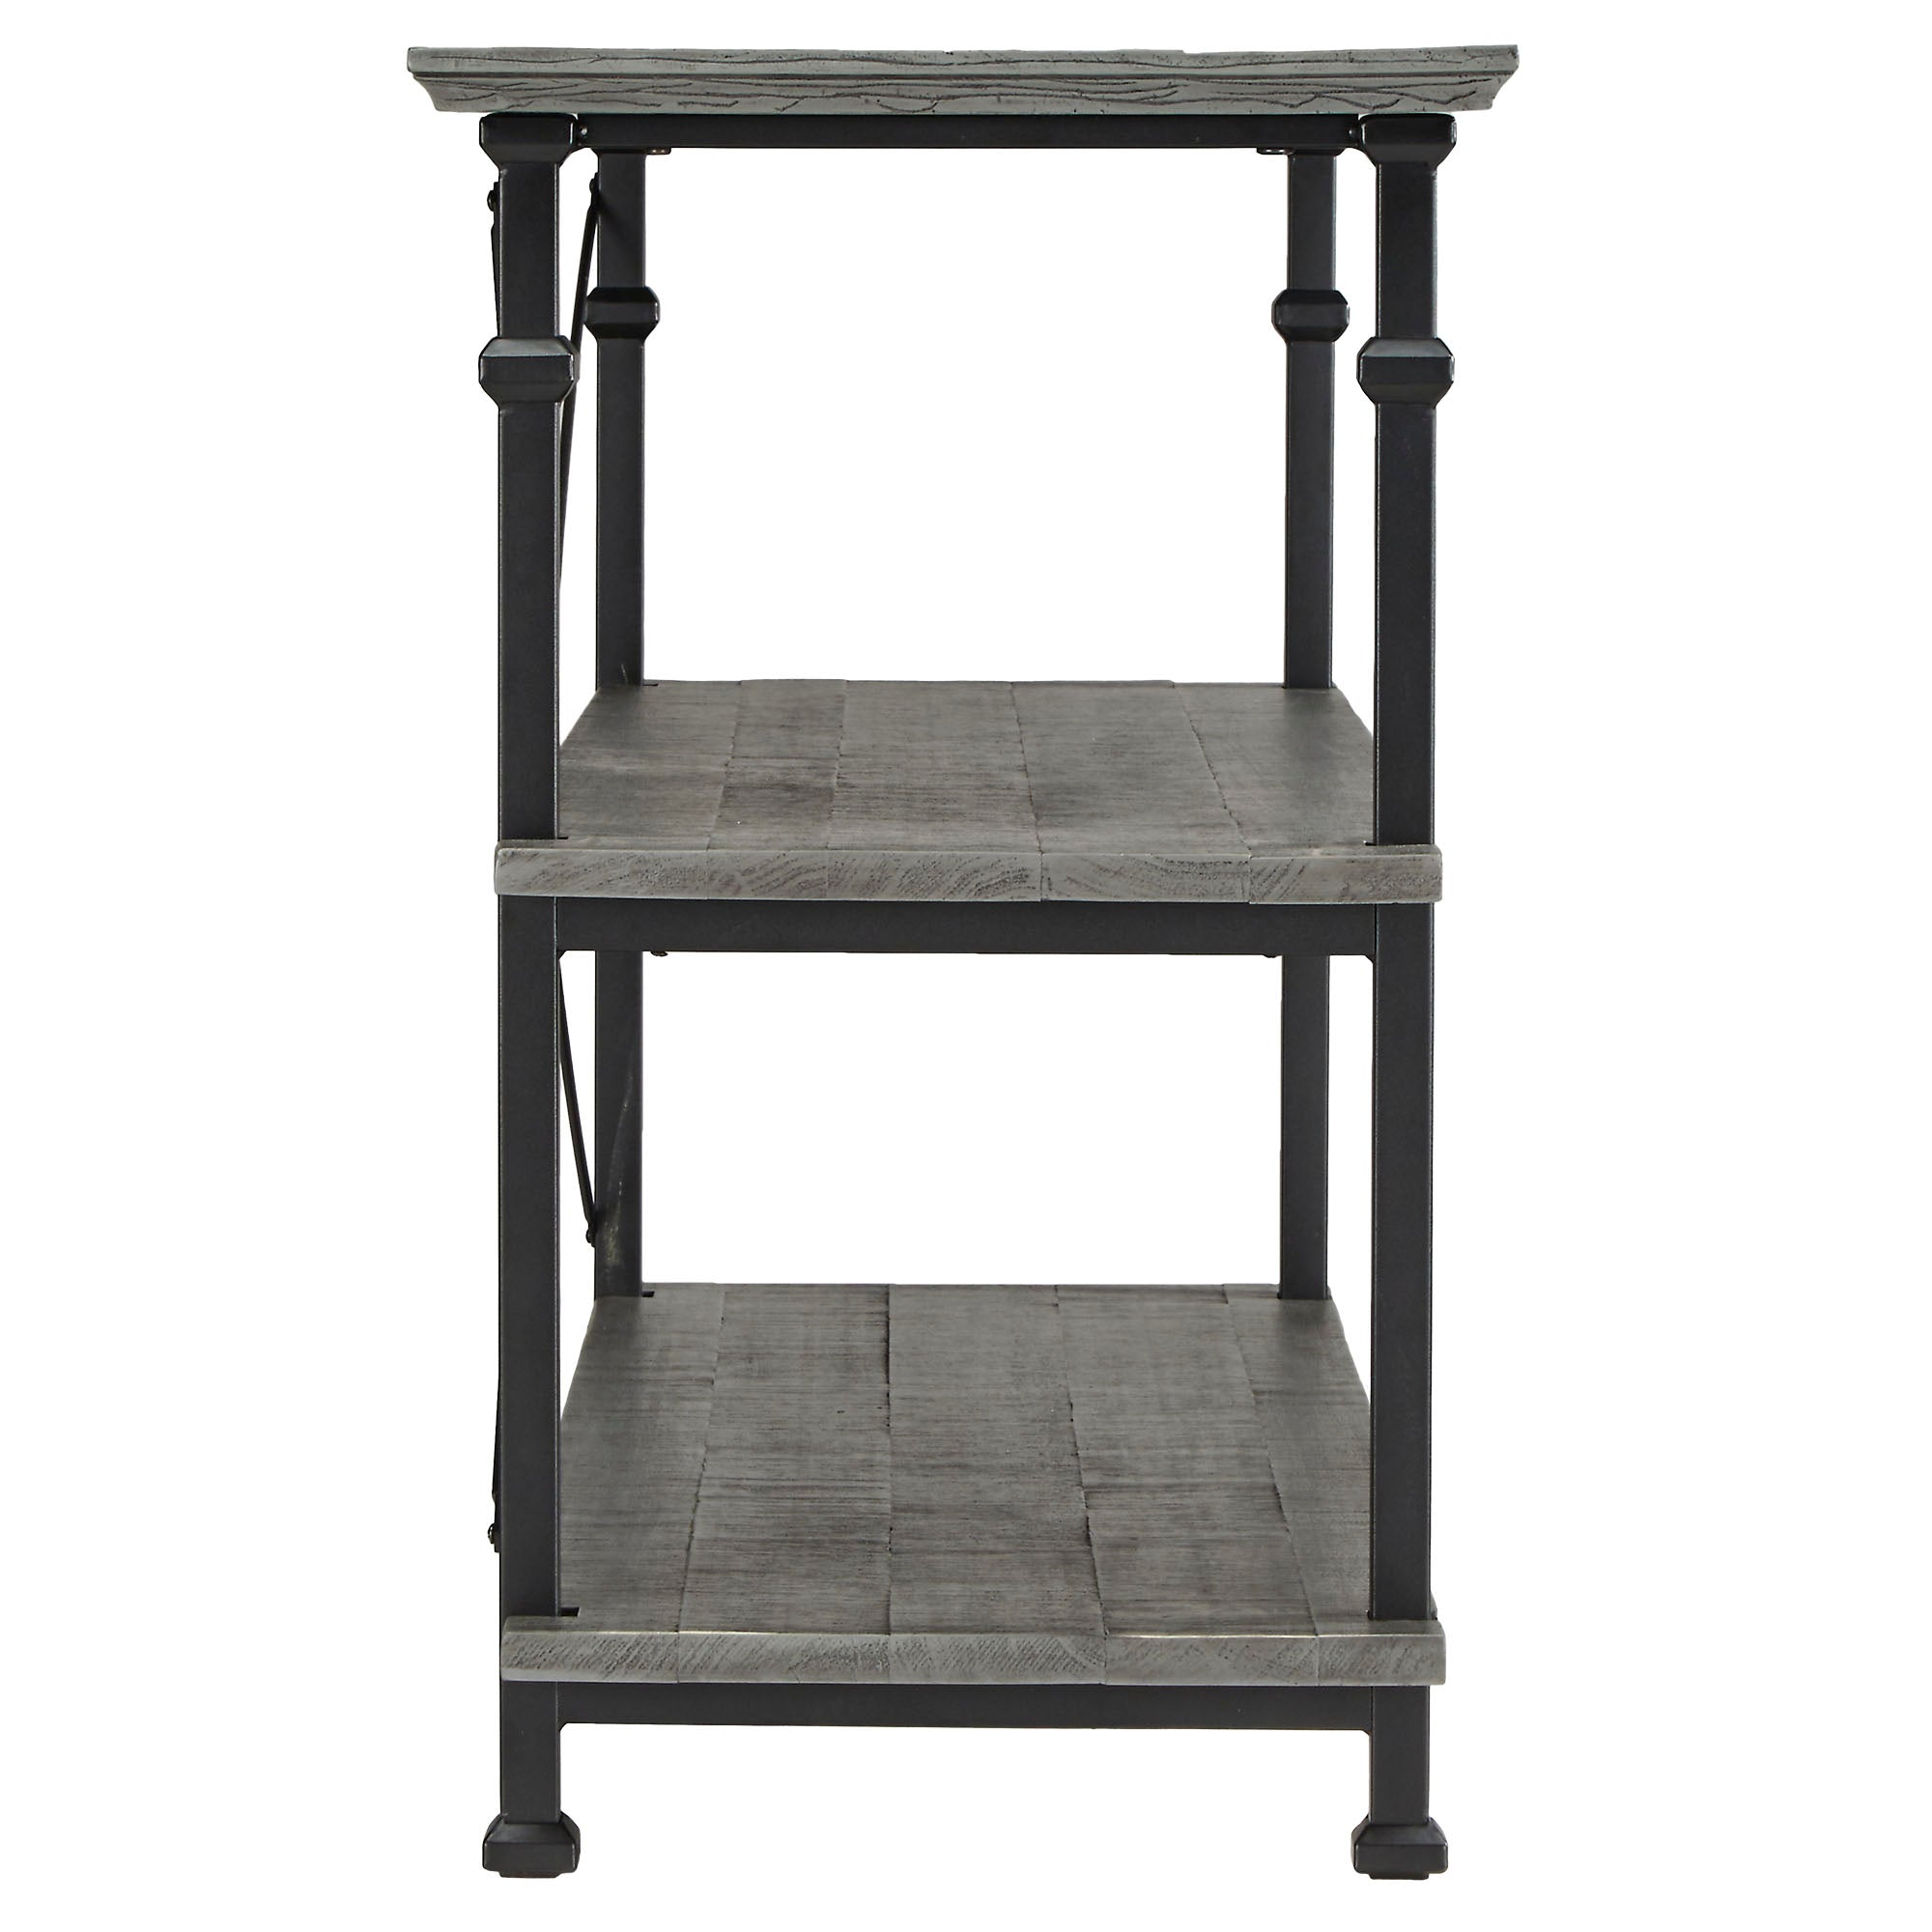 Vintage Industrial TV Stand - Grey Finish